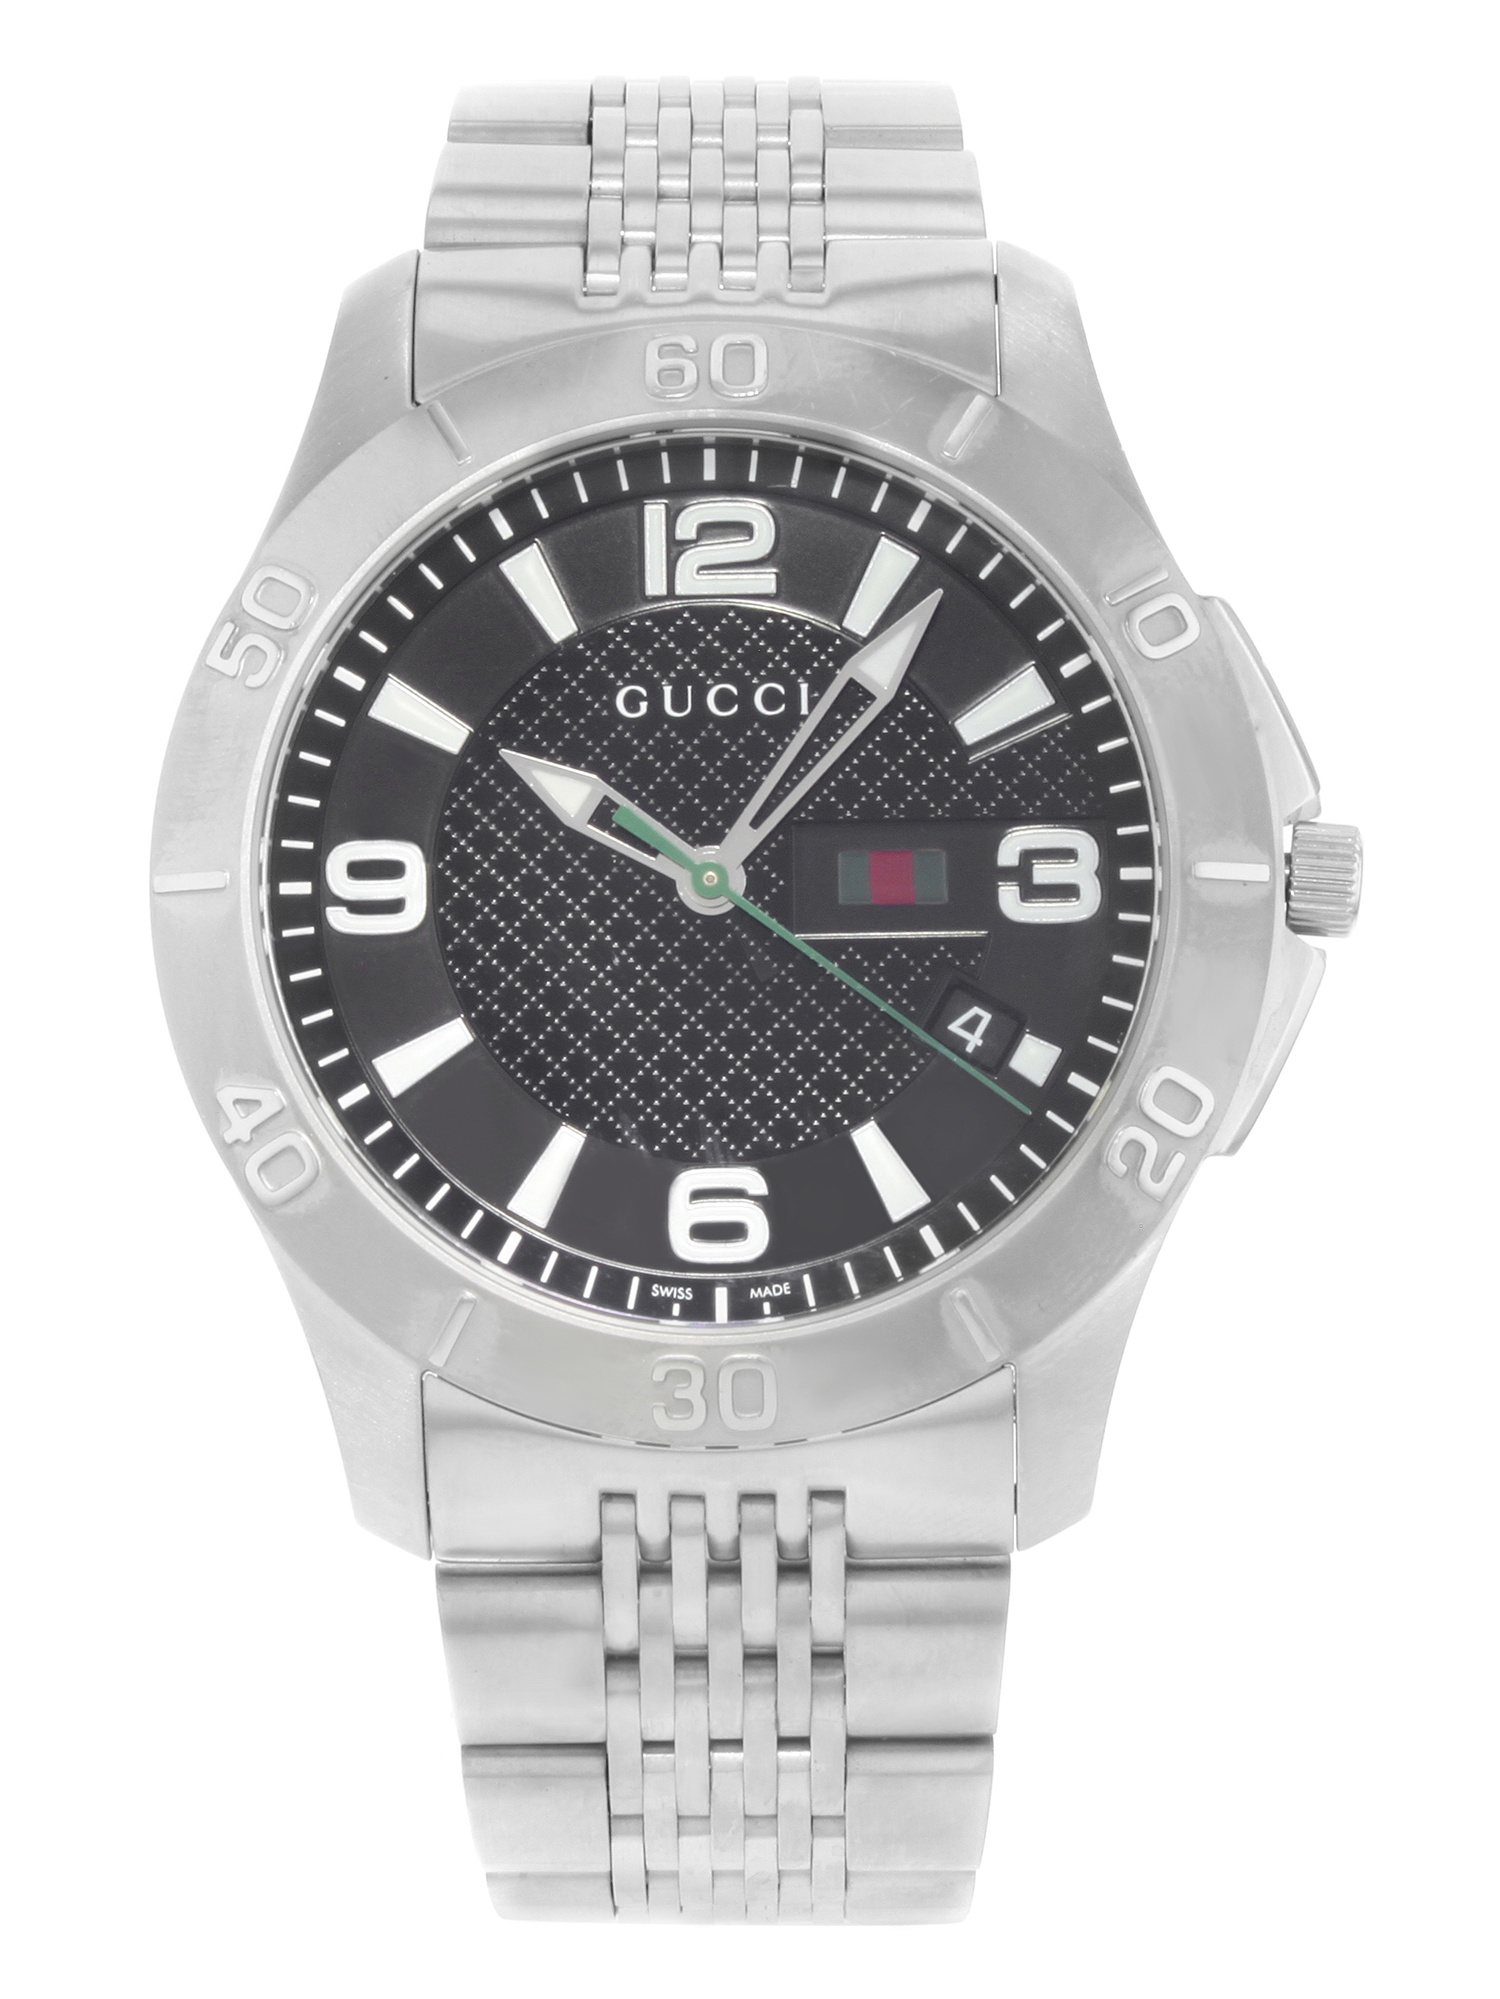 Gucci G-Timeless YA126218 Stainless Steel Quartz Men's Watch (Pre-owned) No Box Papers